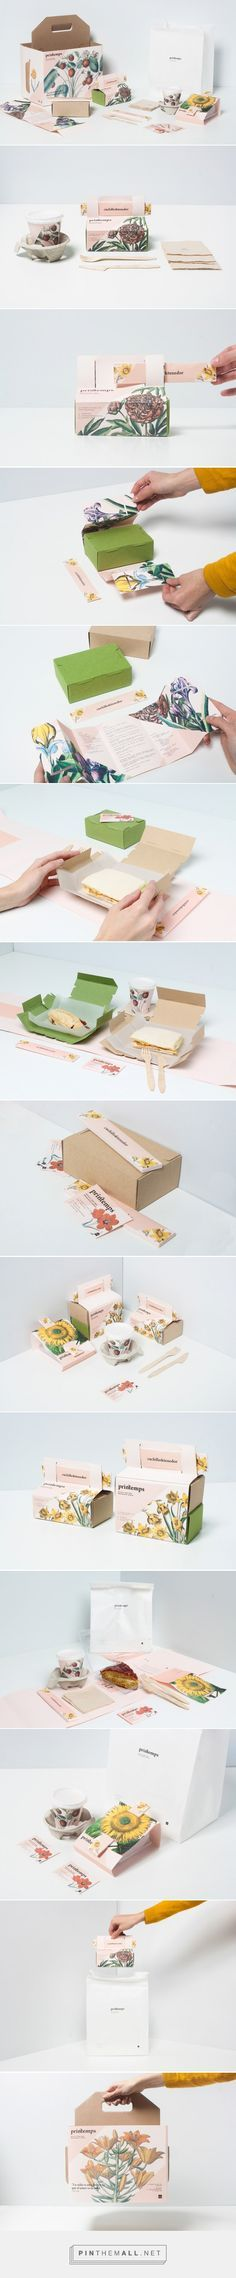 Printemps Take Away Food Packaging by Nat Tattaglia, Olaya Pintado, and Eli García Tea Packaging, Pretty Packaging, Brand Packaging, Product Packaging, Cheese Packaging, Flower Packaging, Packaging Boxes, Vintage Packaging, Beverage Packaging